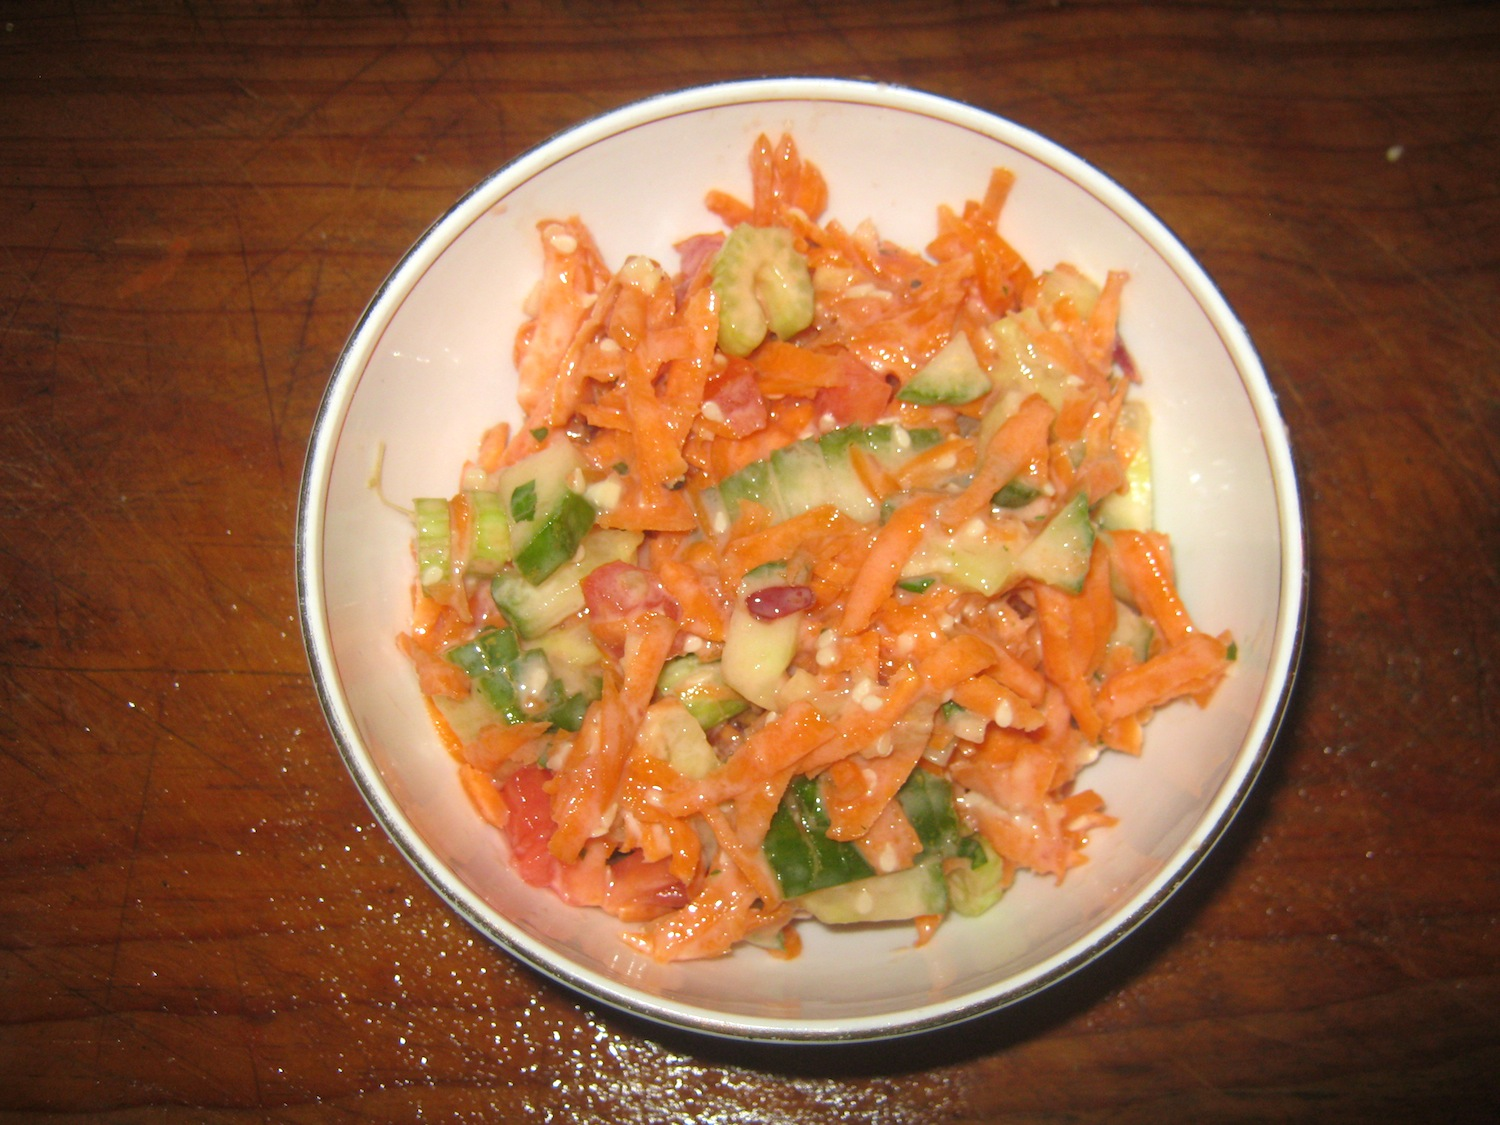 Many Raw Foods can be used for Quick and Easy Healthy recipes